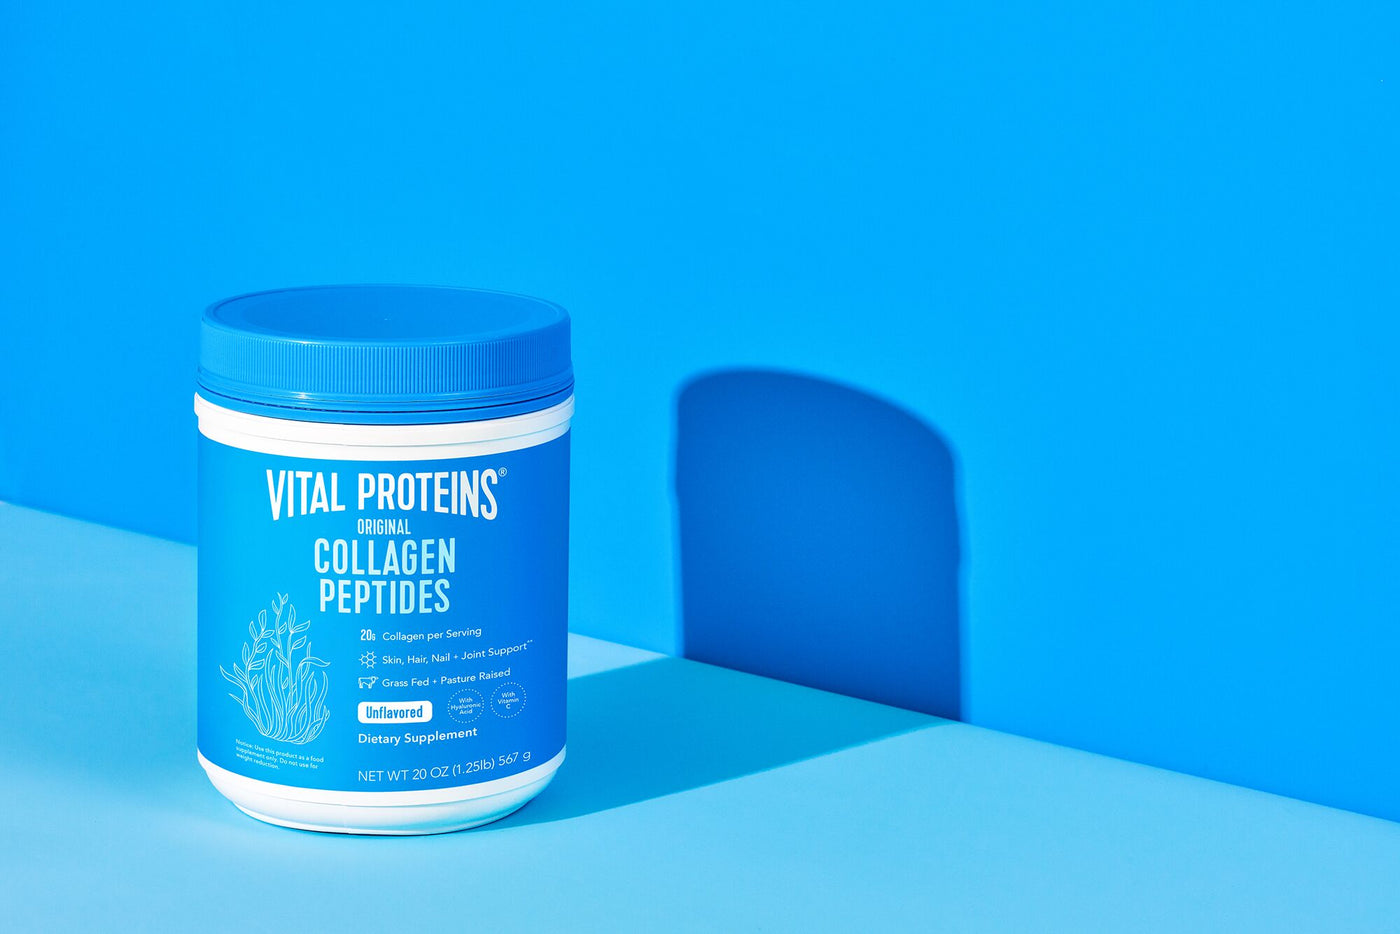 Add To Your Wish List This Collagen Powder Has 5 Stars 3 110 Review Vital Proteins,Wall Art For Bedrooms Ireland